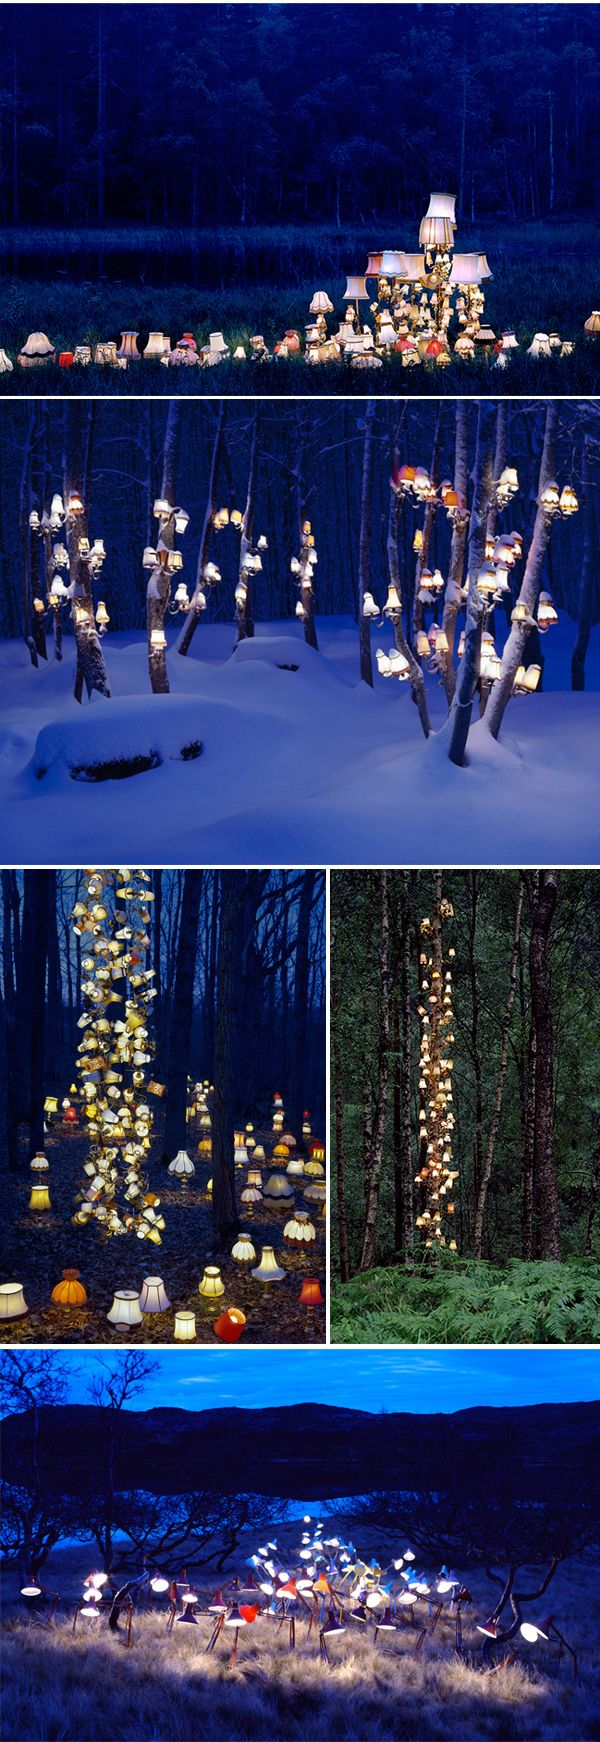 Outdoor lamp art arranged and photographed by Norwegian artist Rune Guneriussen